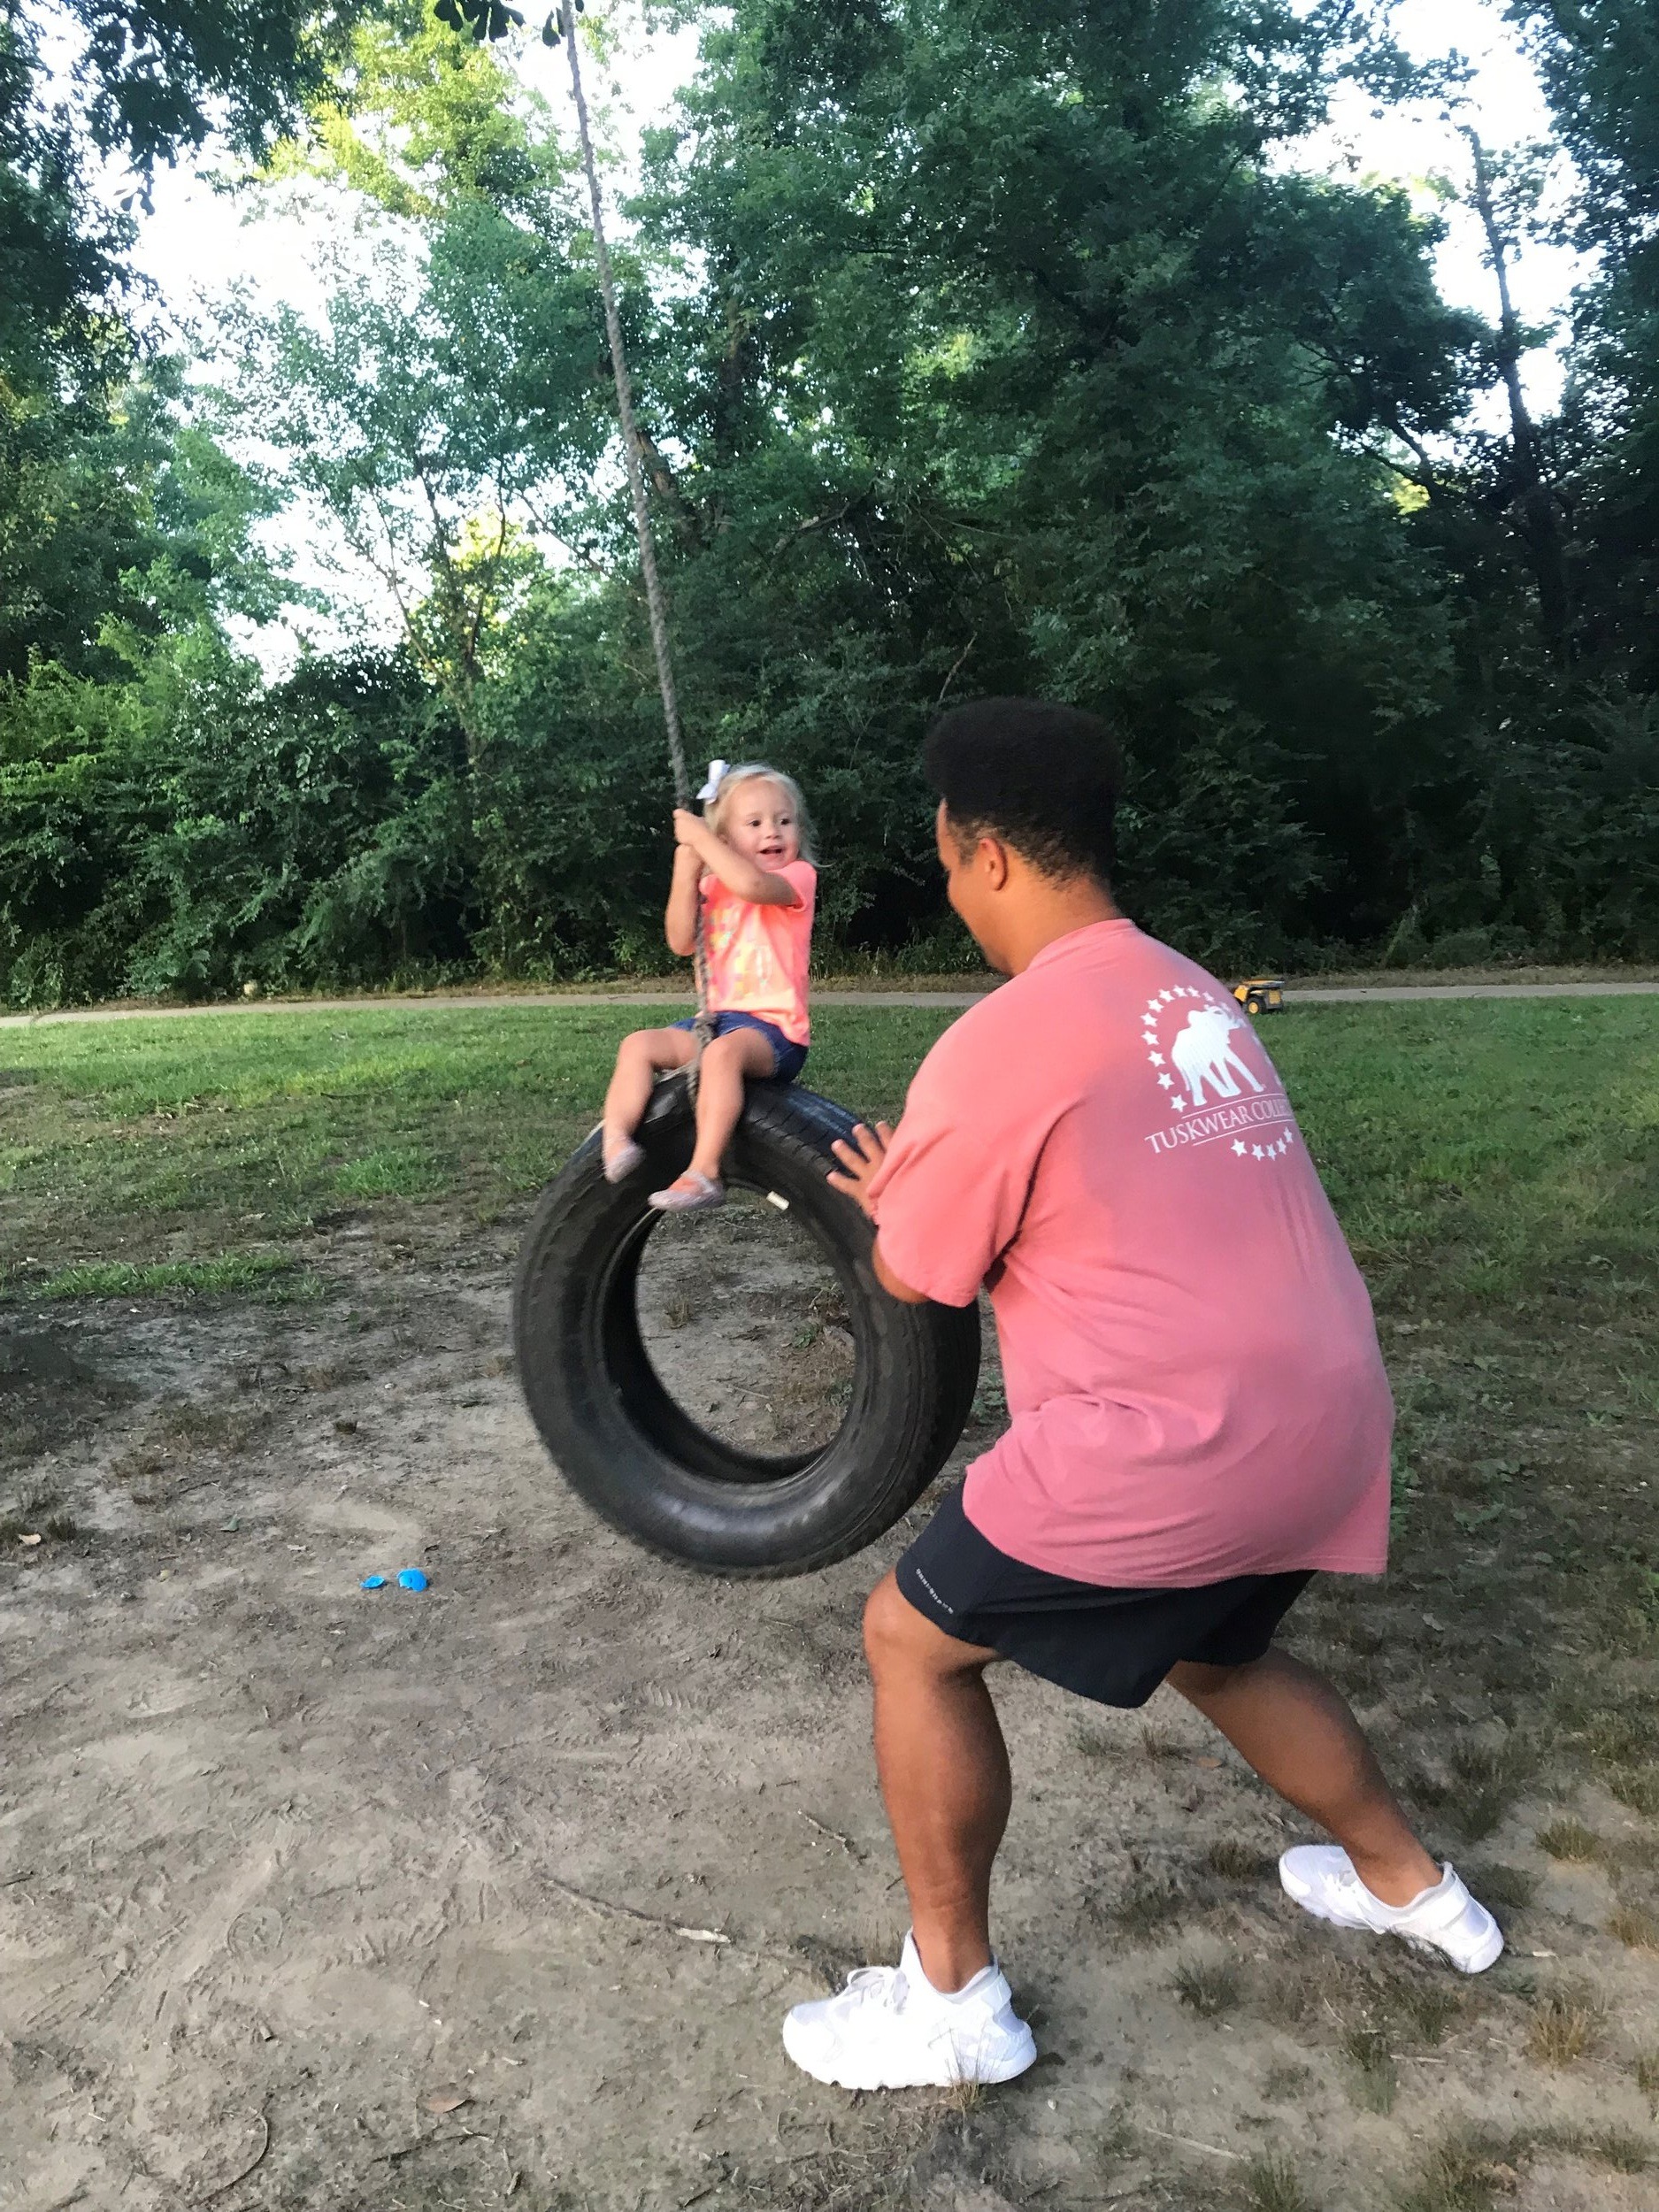 Fun on the tire swing!